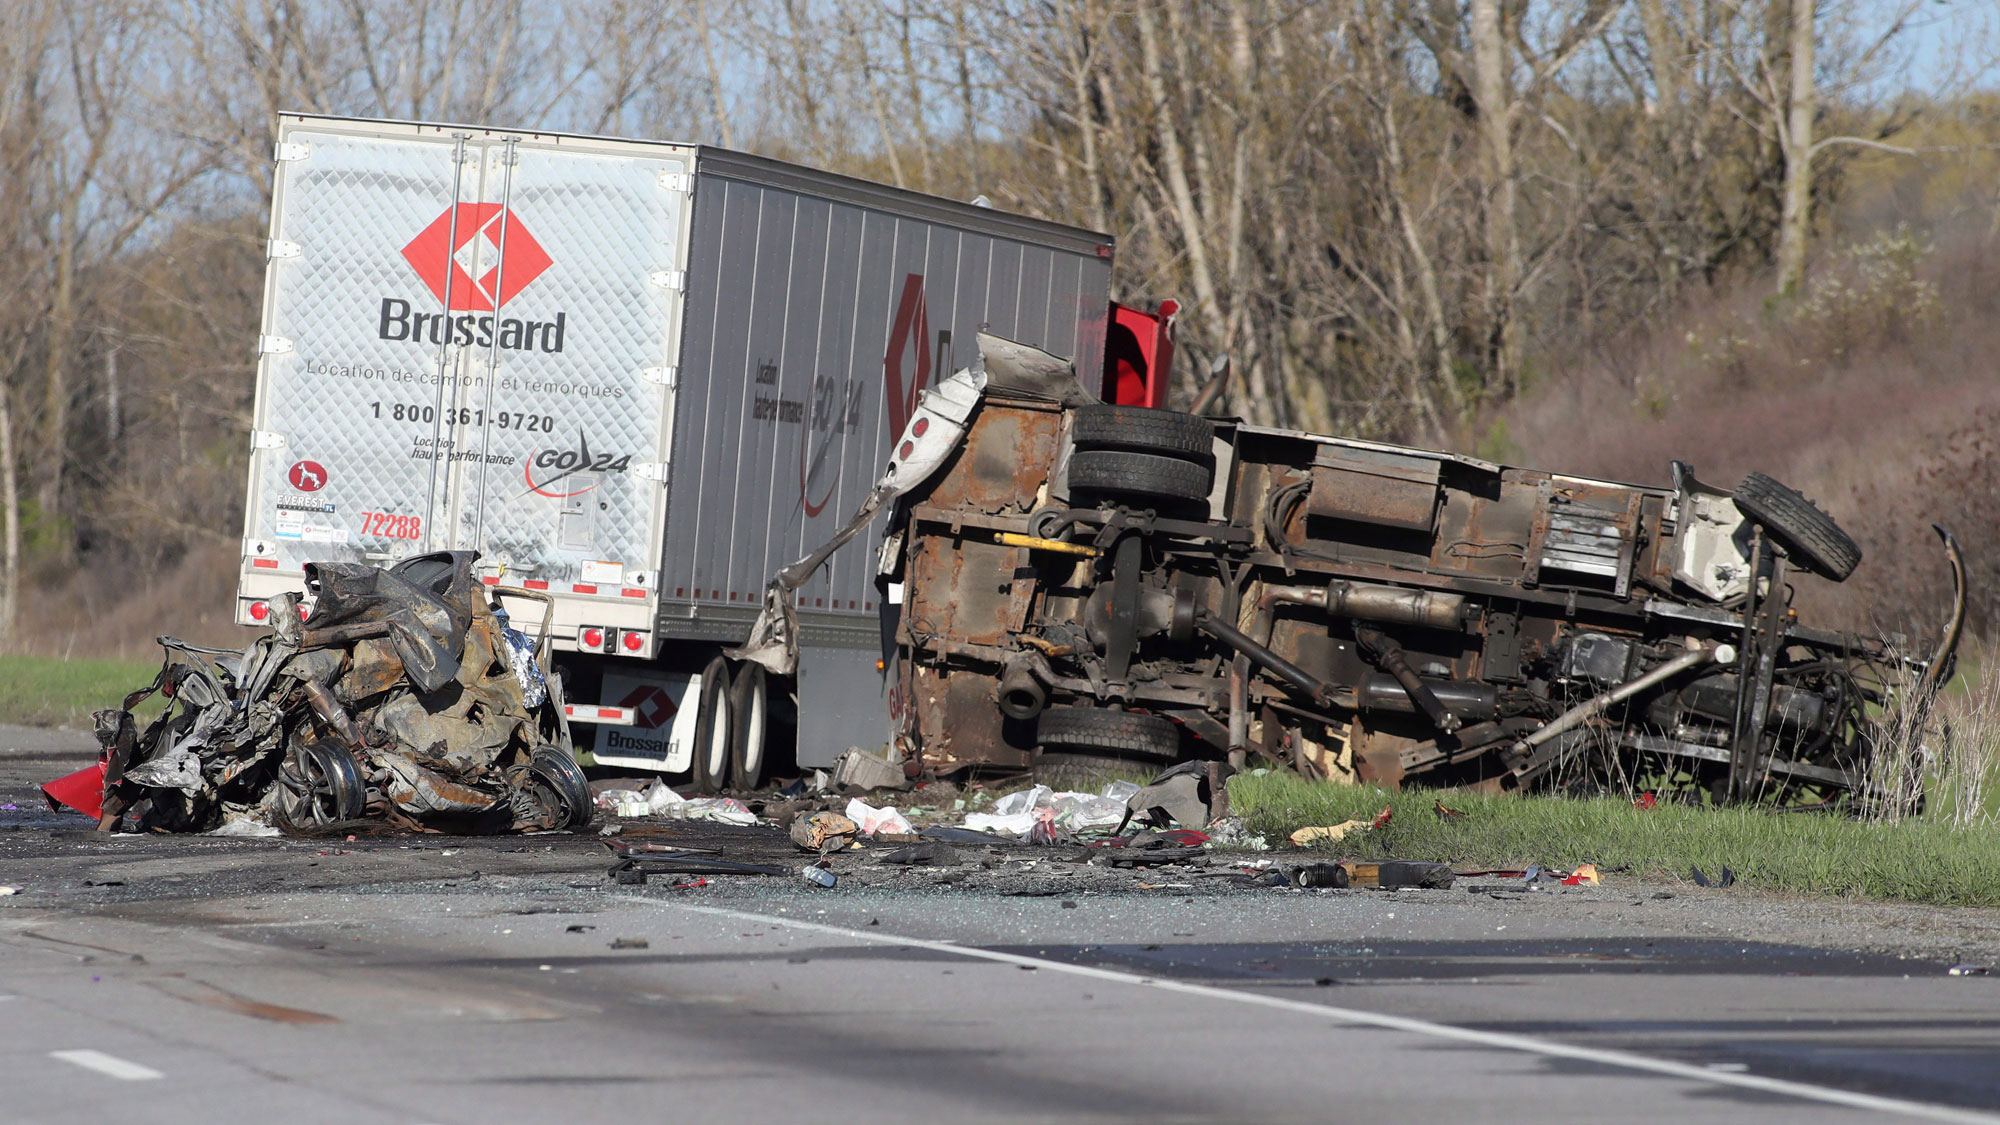 Fatal accident on 401 today kitchener